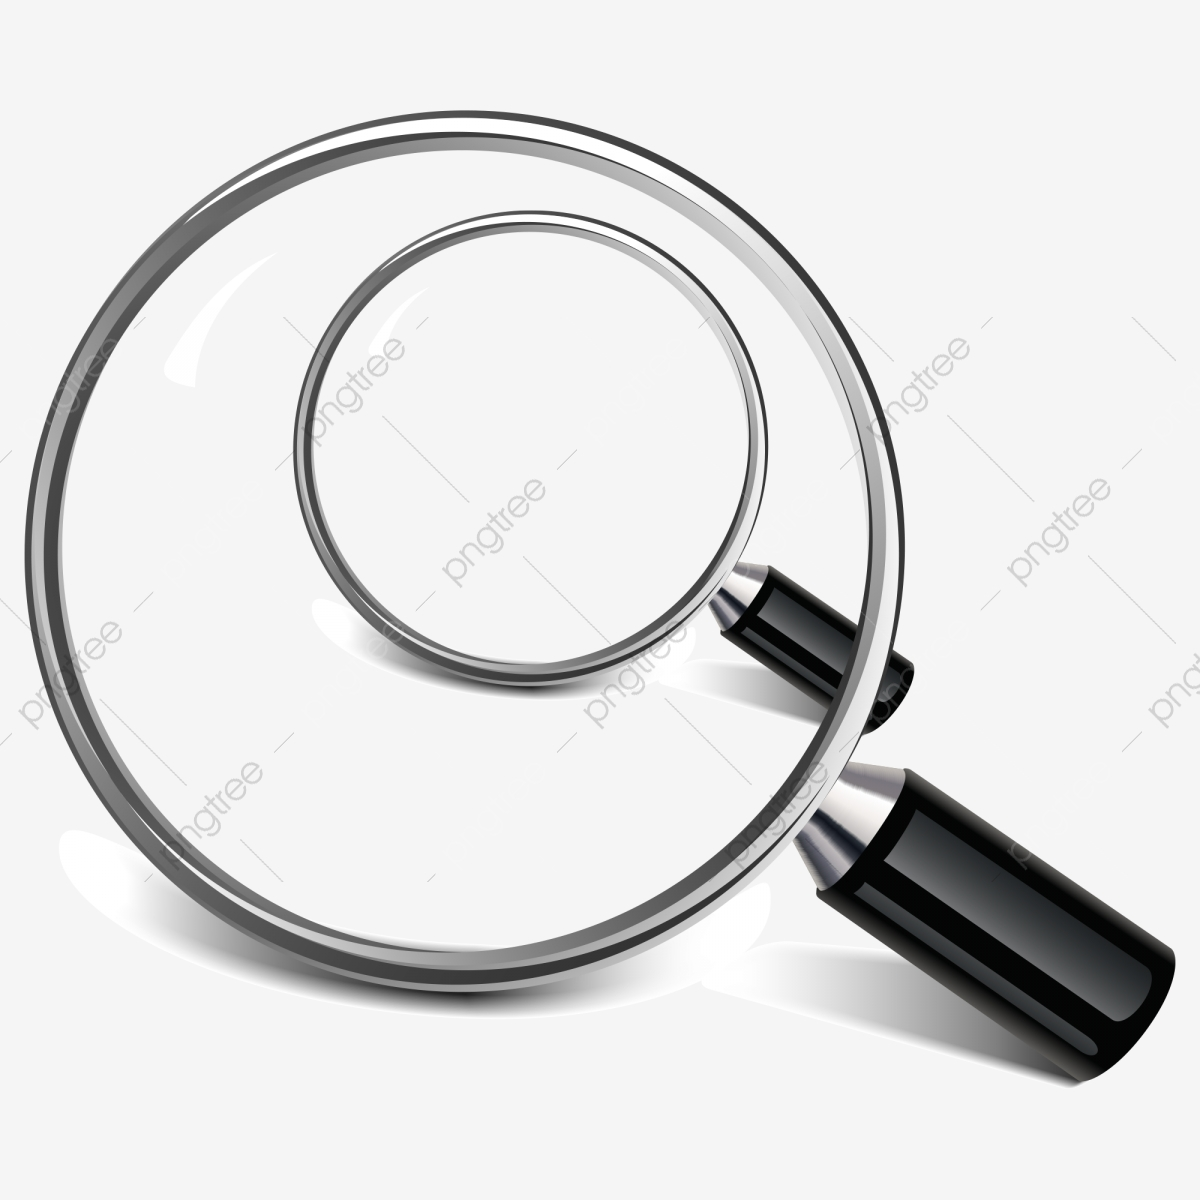 Daily Life Supplies Magnifying Glass Effect Material